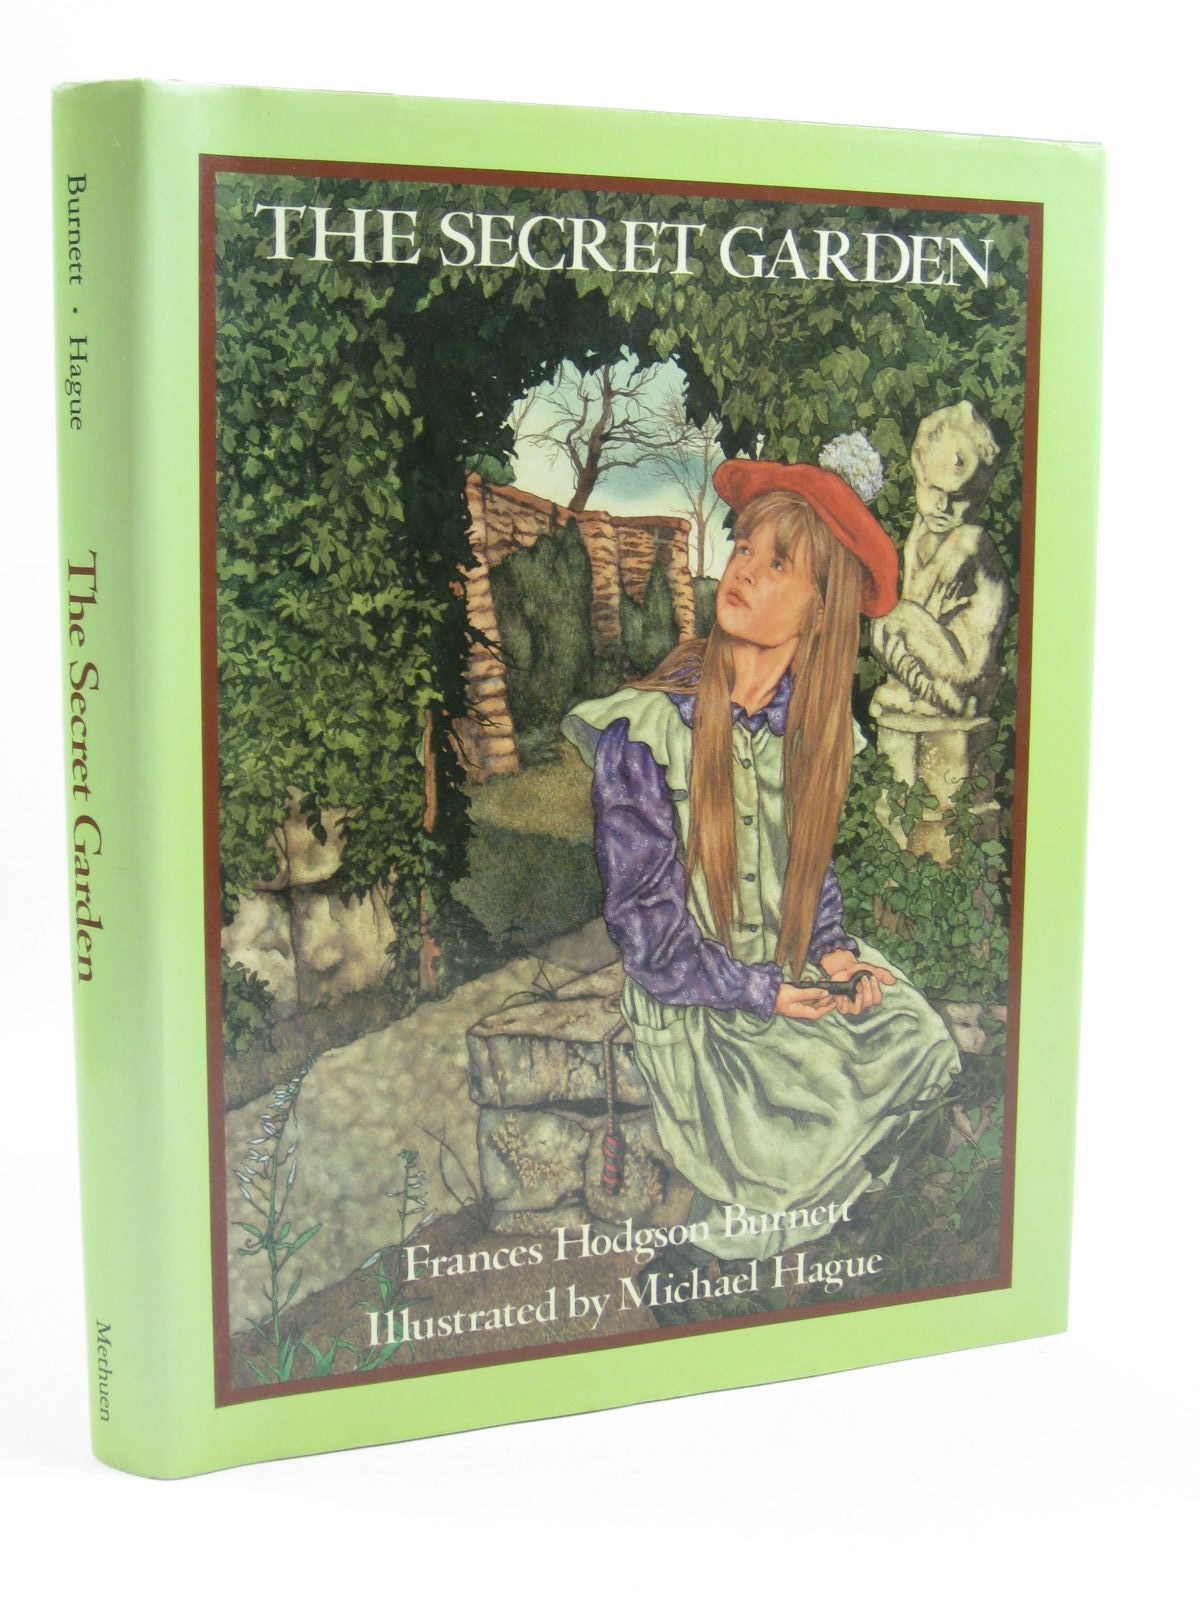 Photo of THE SECRET GARDEN written by Burnett, Frances Hodgson illustrated by Hague, Michael published by Methuen Children's Books (STOCK CODE: 1406742)  for sale by Stella & Rose's Books